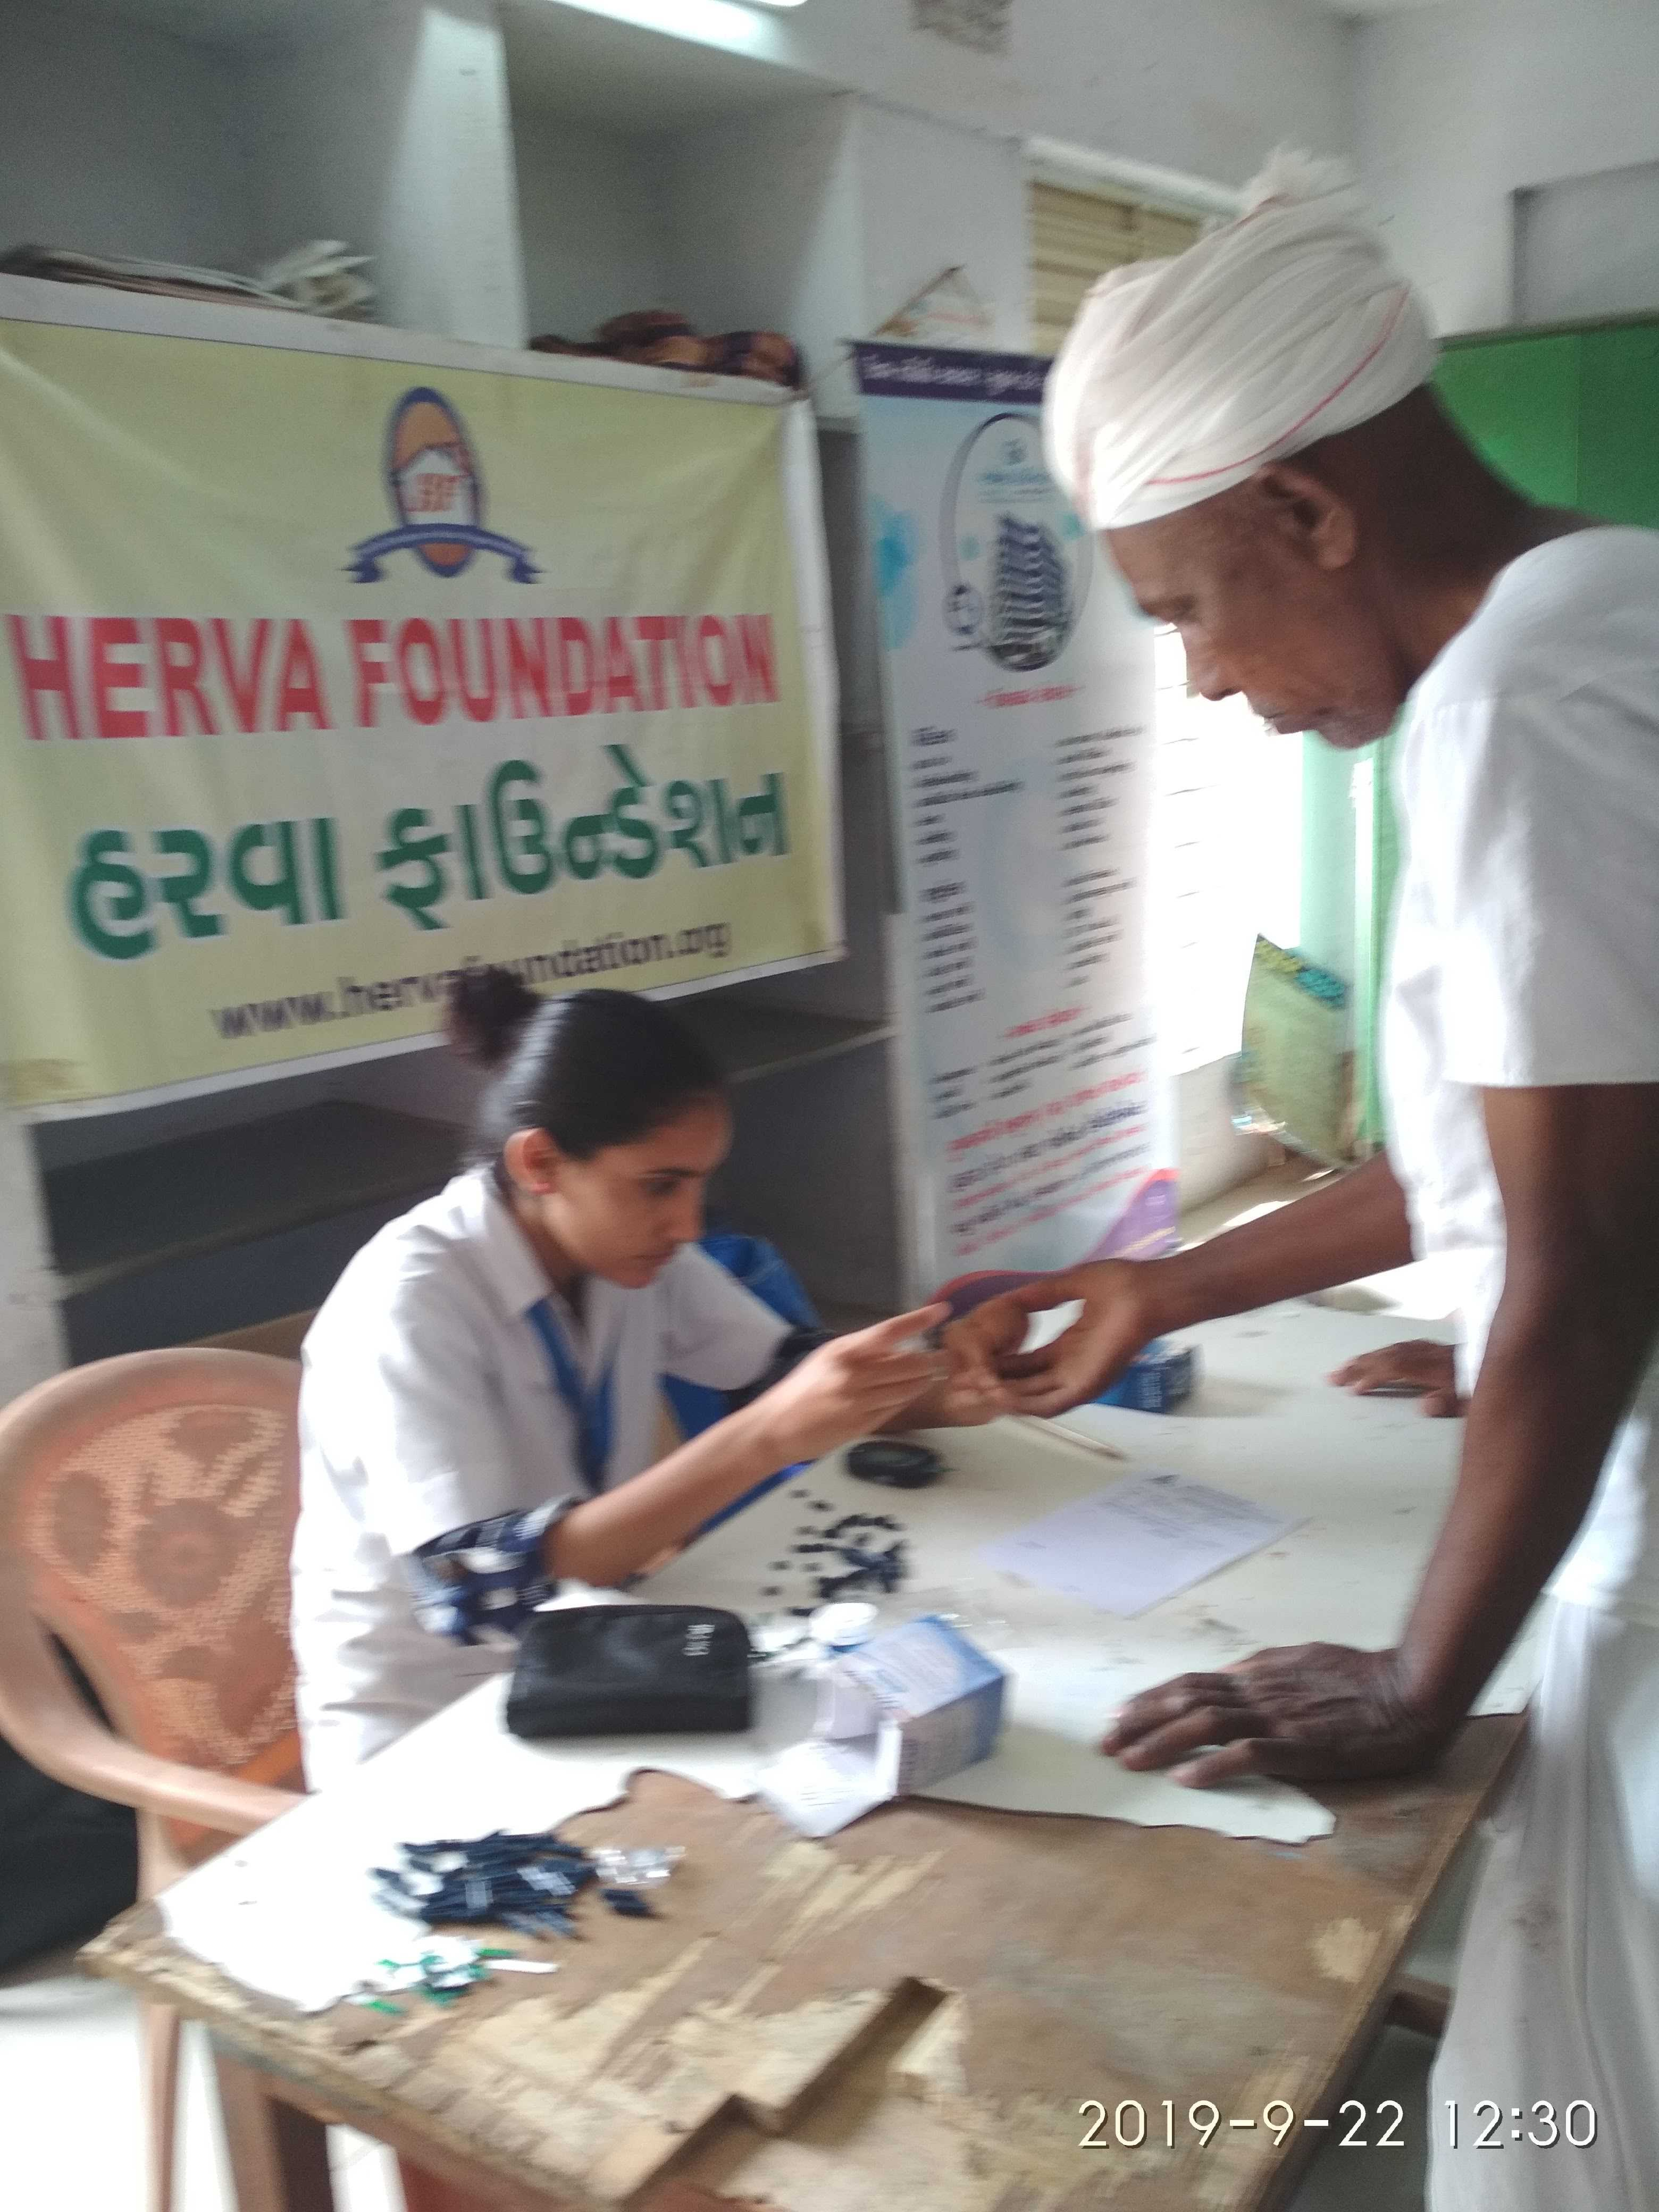 Free health check-up and free medicine distribution camp at village Ghoda taluka Viramgam, Gujarat in association with Global Hospital, Thalej, Ahmedabad on 22-9-19 -Sunday Total 105 villagers attended for check-up...of which 49 males and 56 females ...out of which 34 senior citizens (12 males and 21 females). 30 ECGs done (Male 20 & Female) % have been critical needed further treatment which would be given at Global Hospital.